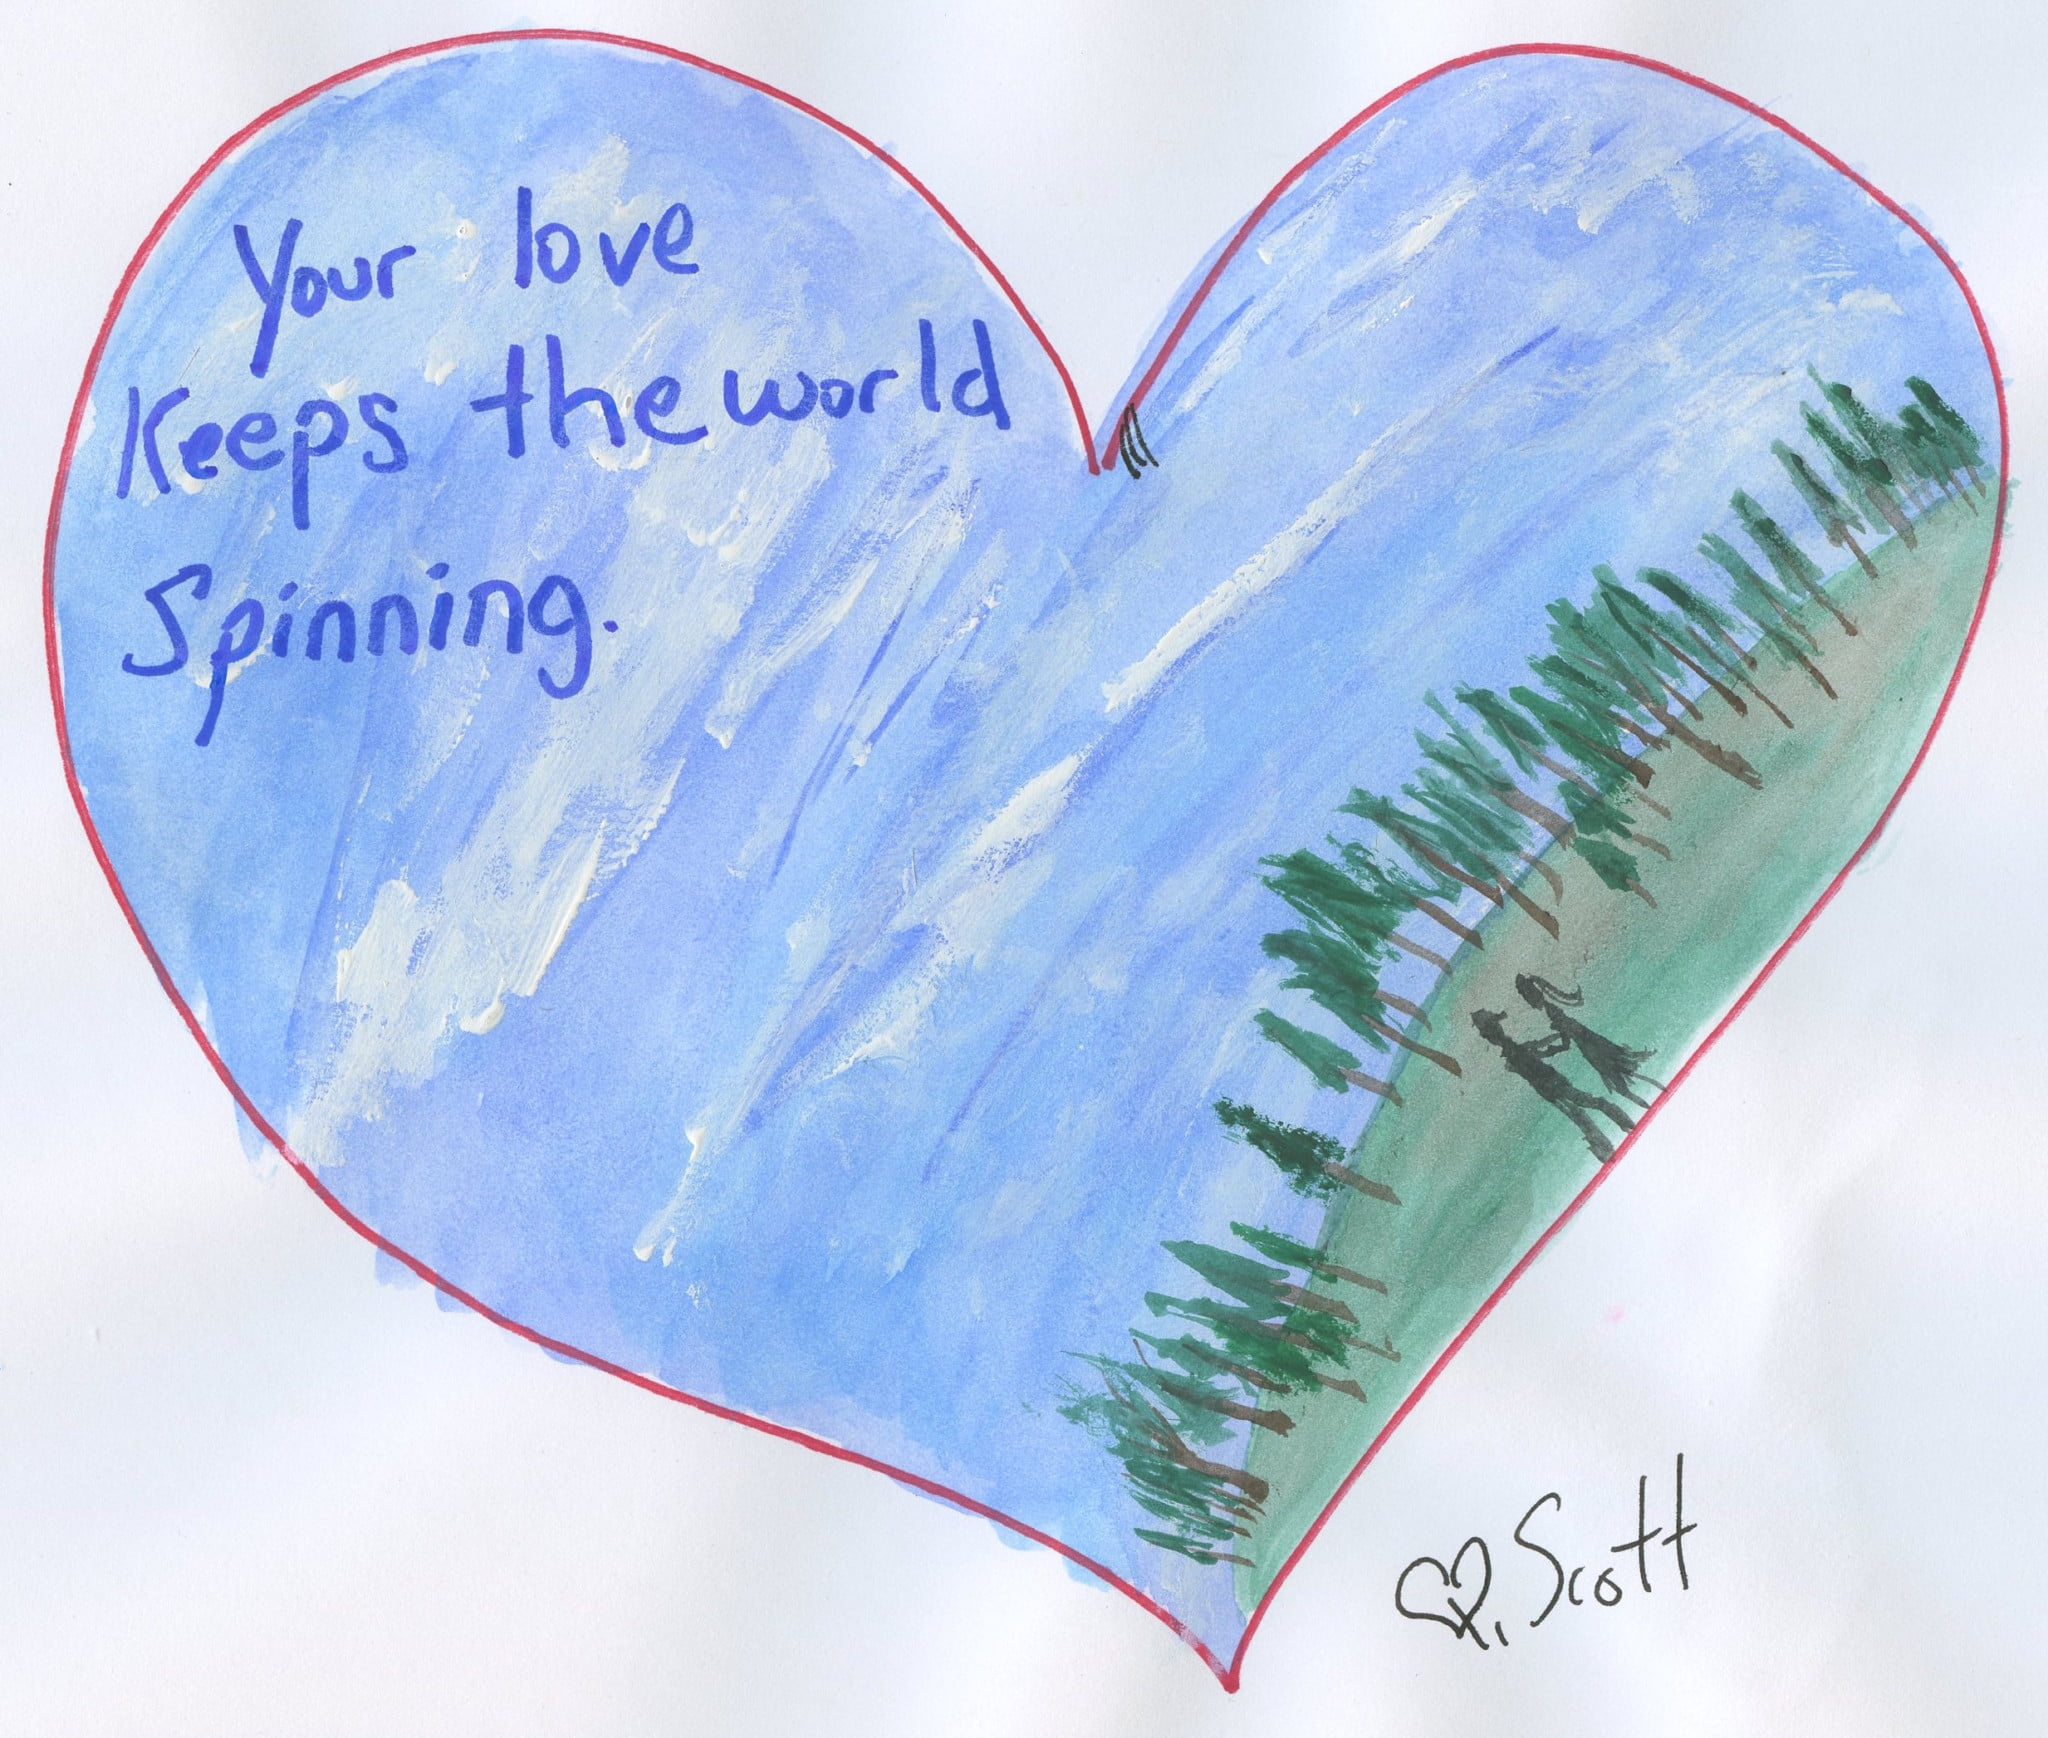 Your love keeps the world spinning